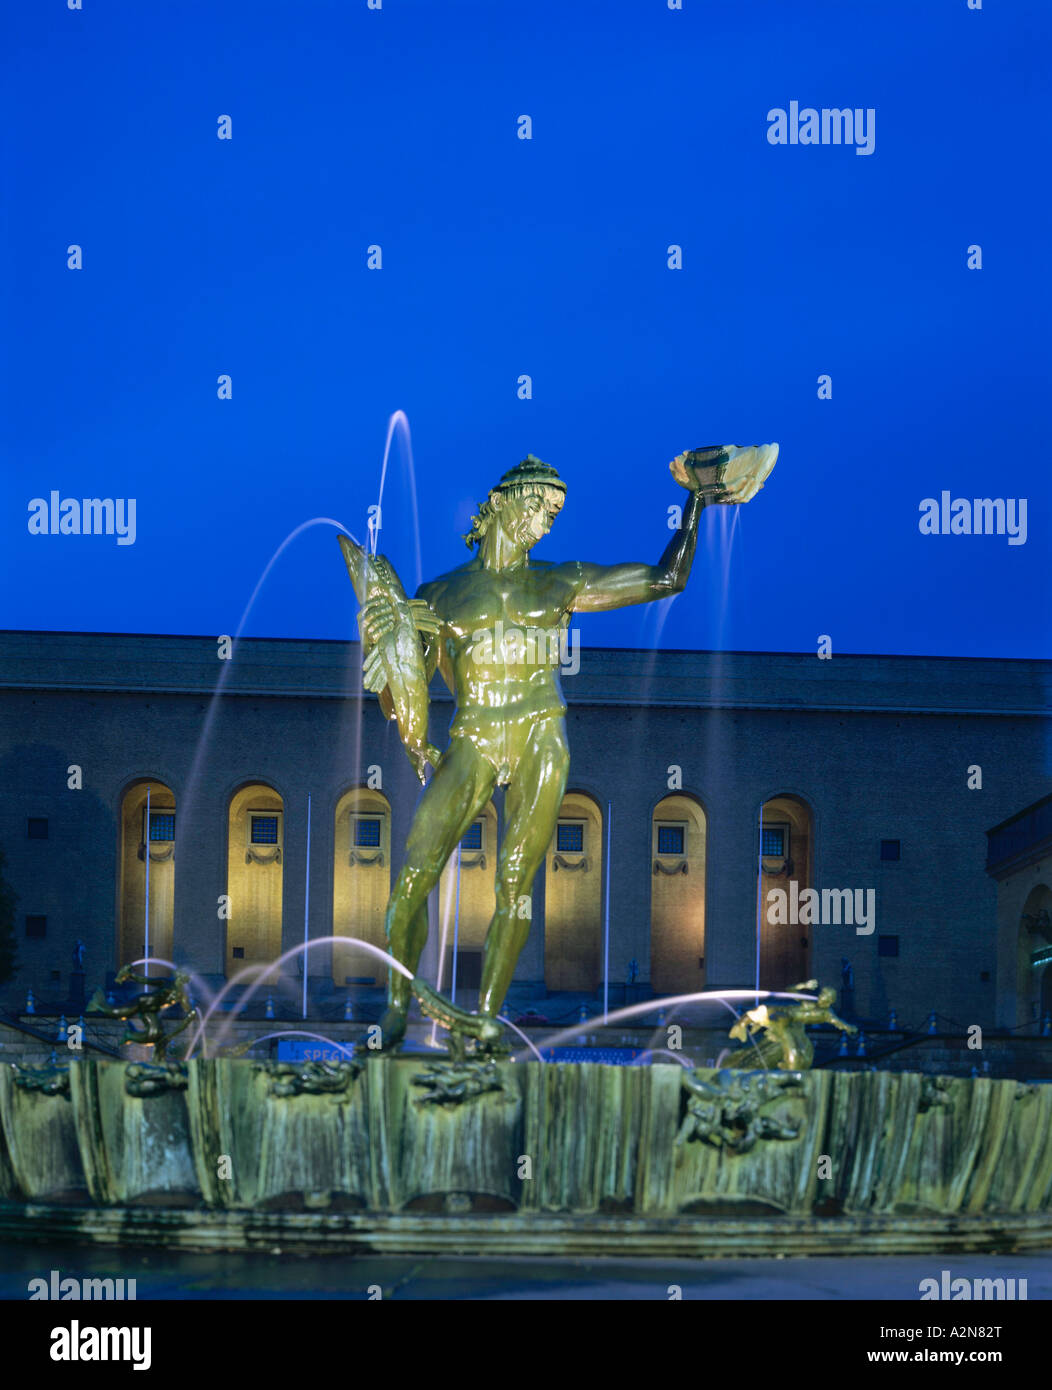 Statue of Poseidon on fountain, Gothenburg, Sweden - Stock Image